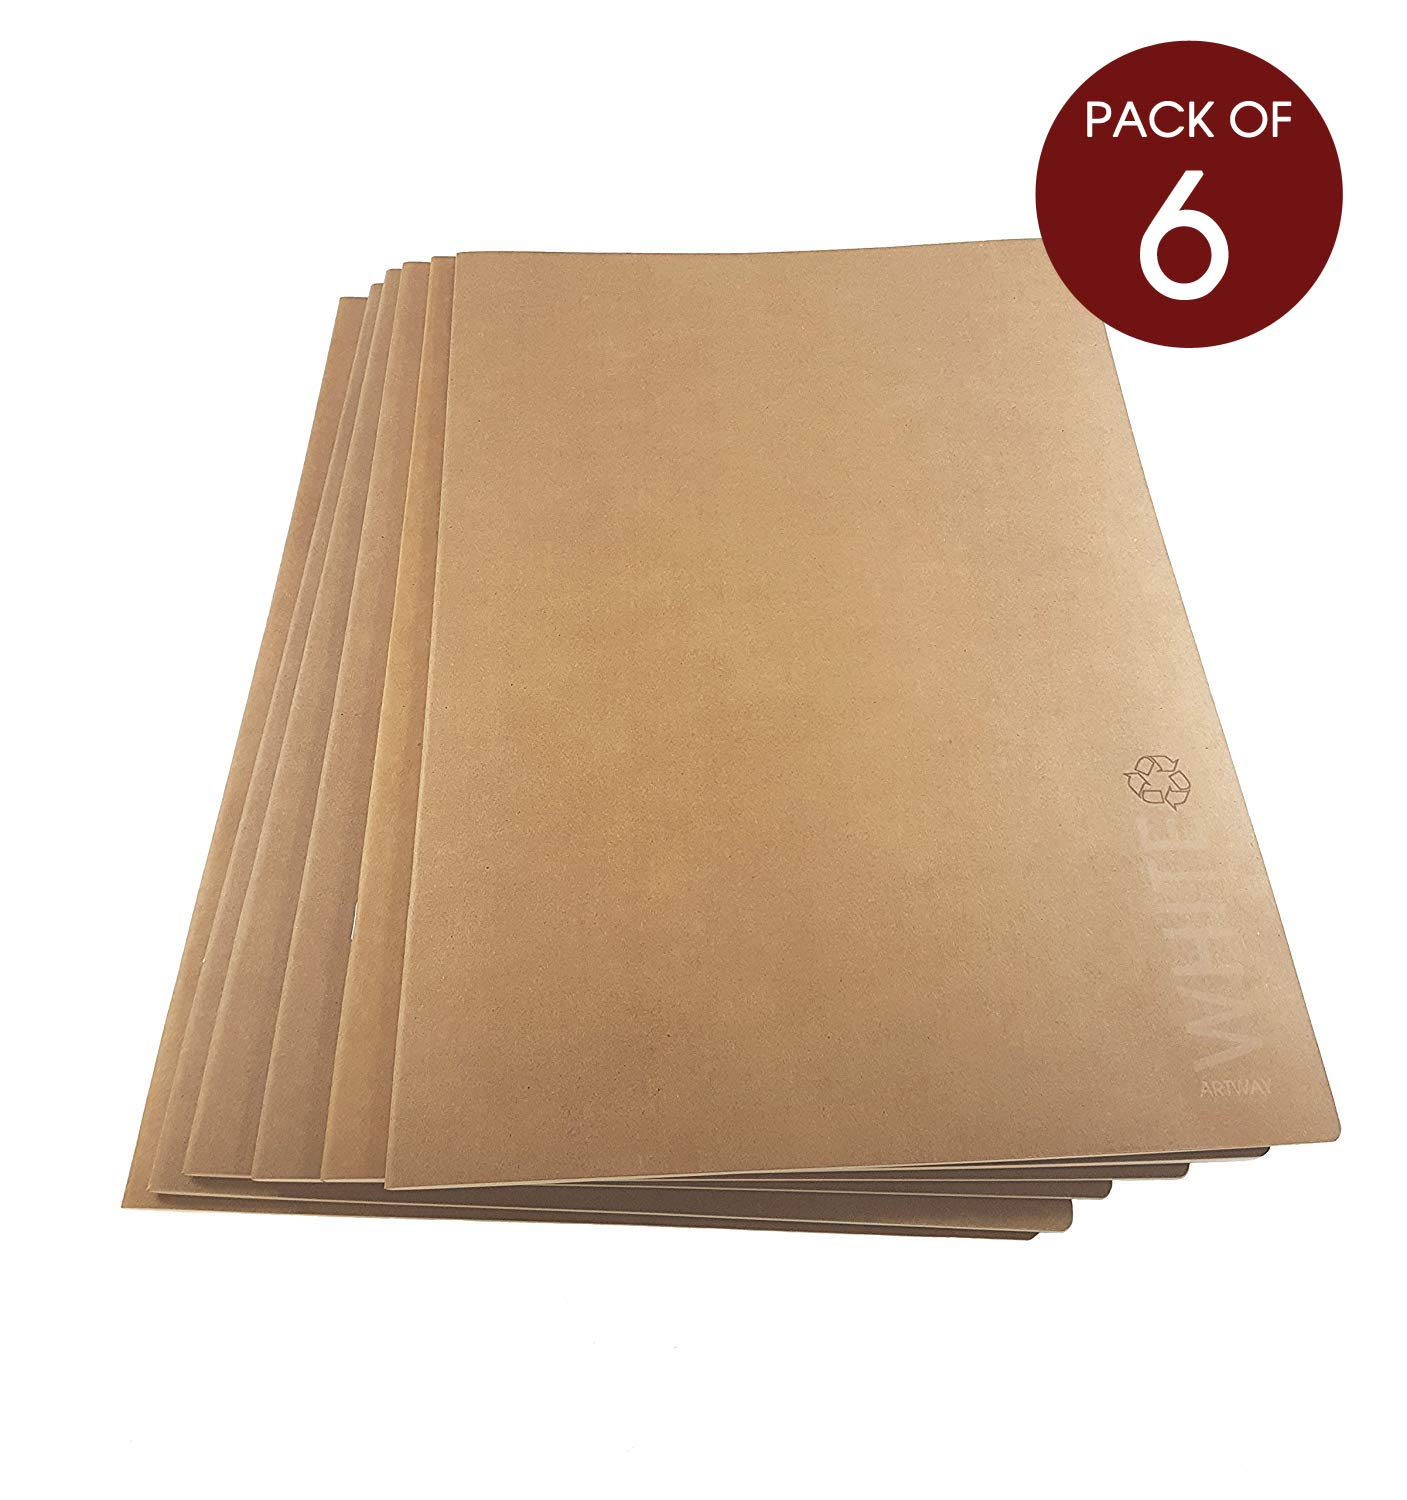 Artway - Softback Sketchbook - White Cartridge Paper with Kraft Paper Cover - Recycled - 130gsm 28 Sides - A3 (6 books) Artway Ltd